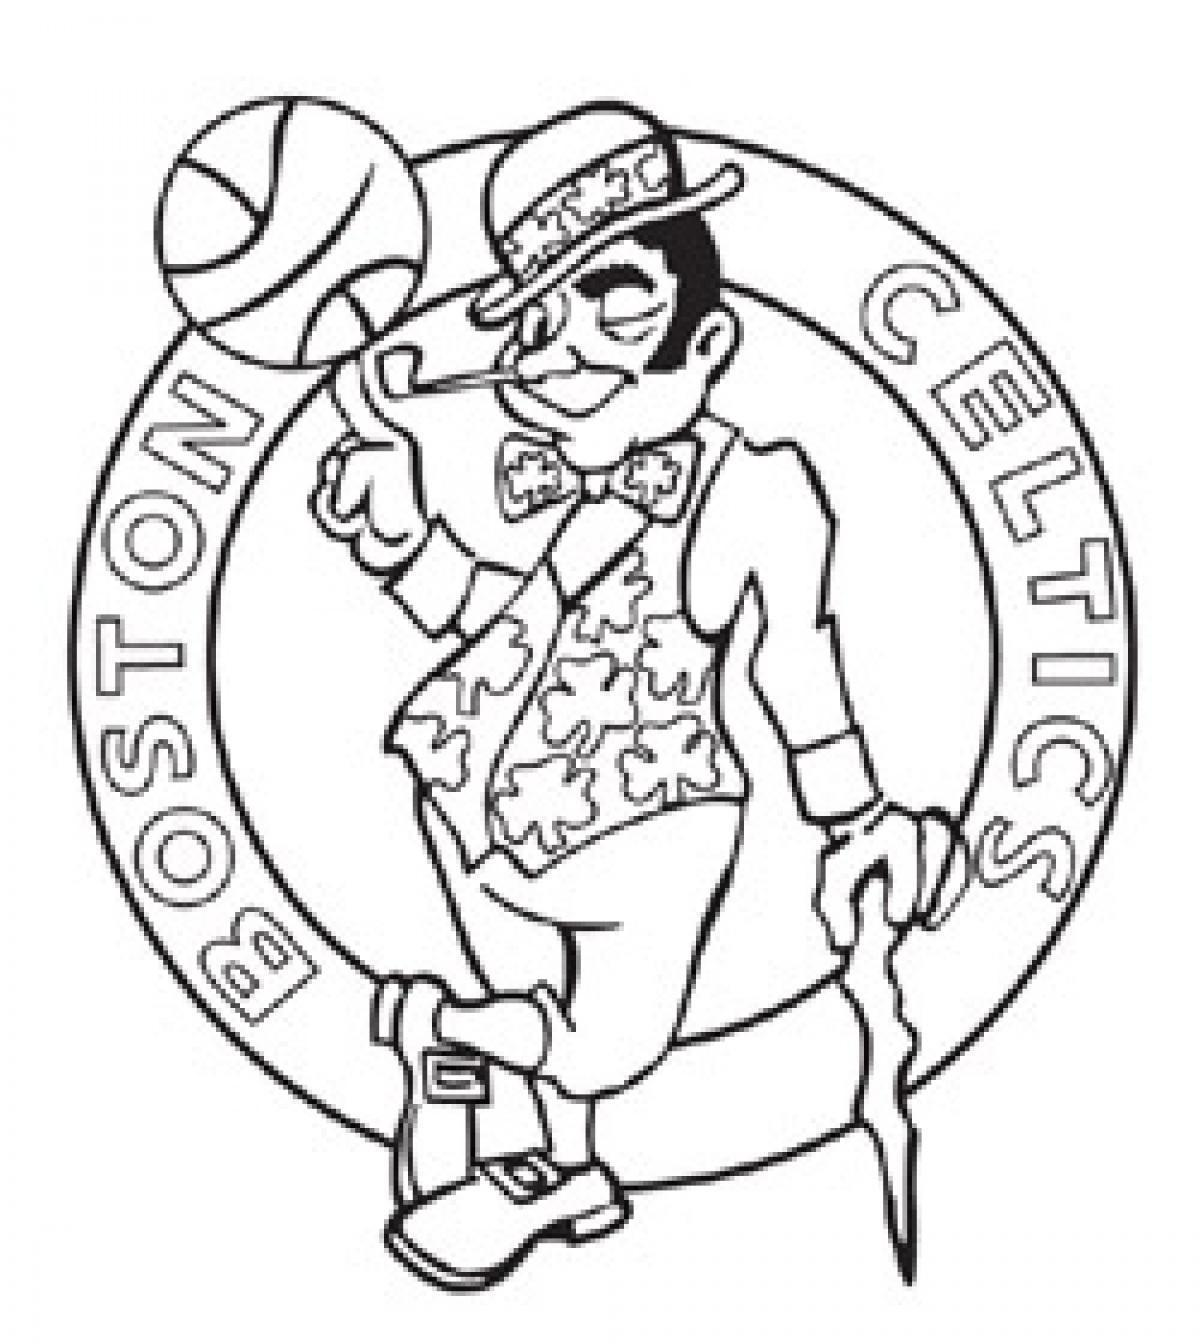 1200x1344 Fascinating Genuine Celtics Basketball Coloring Logo Bruins Page